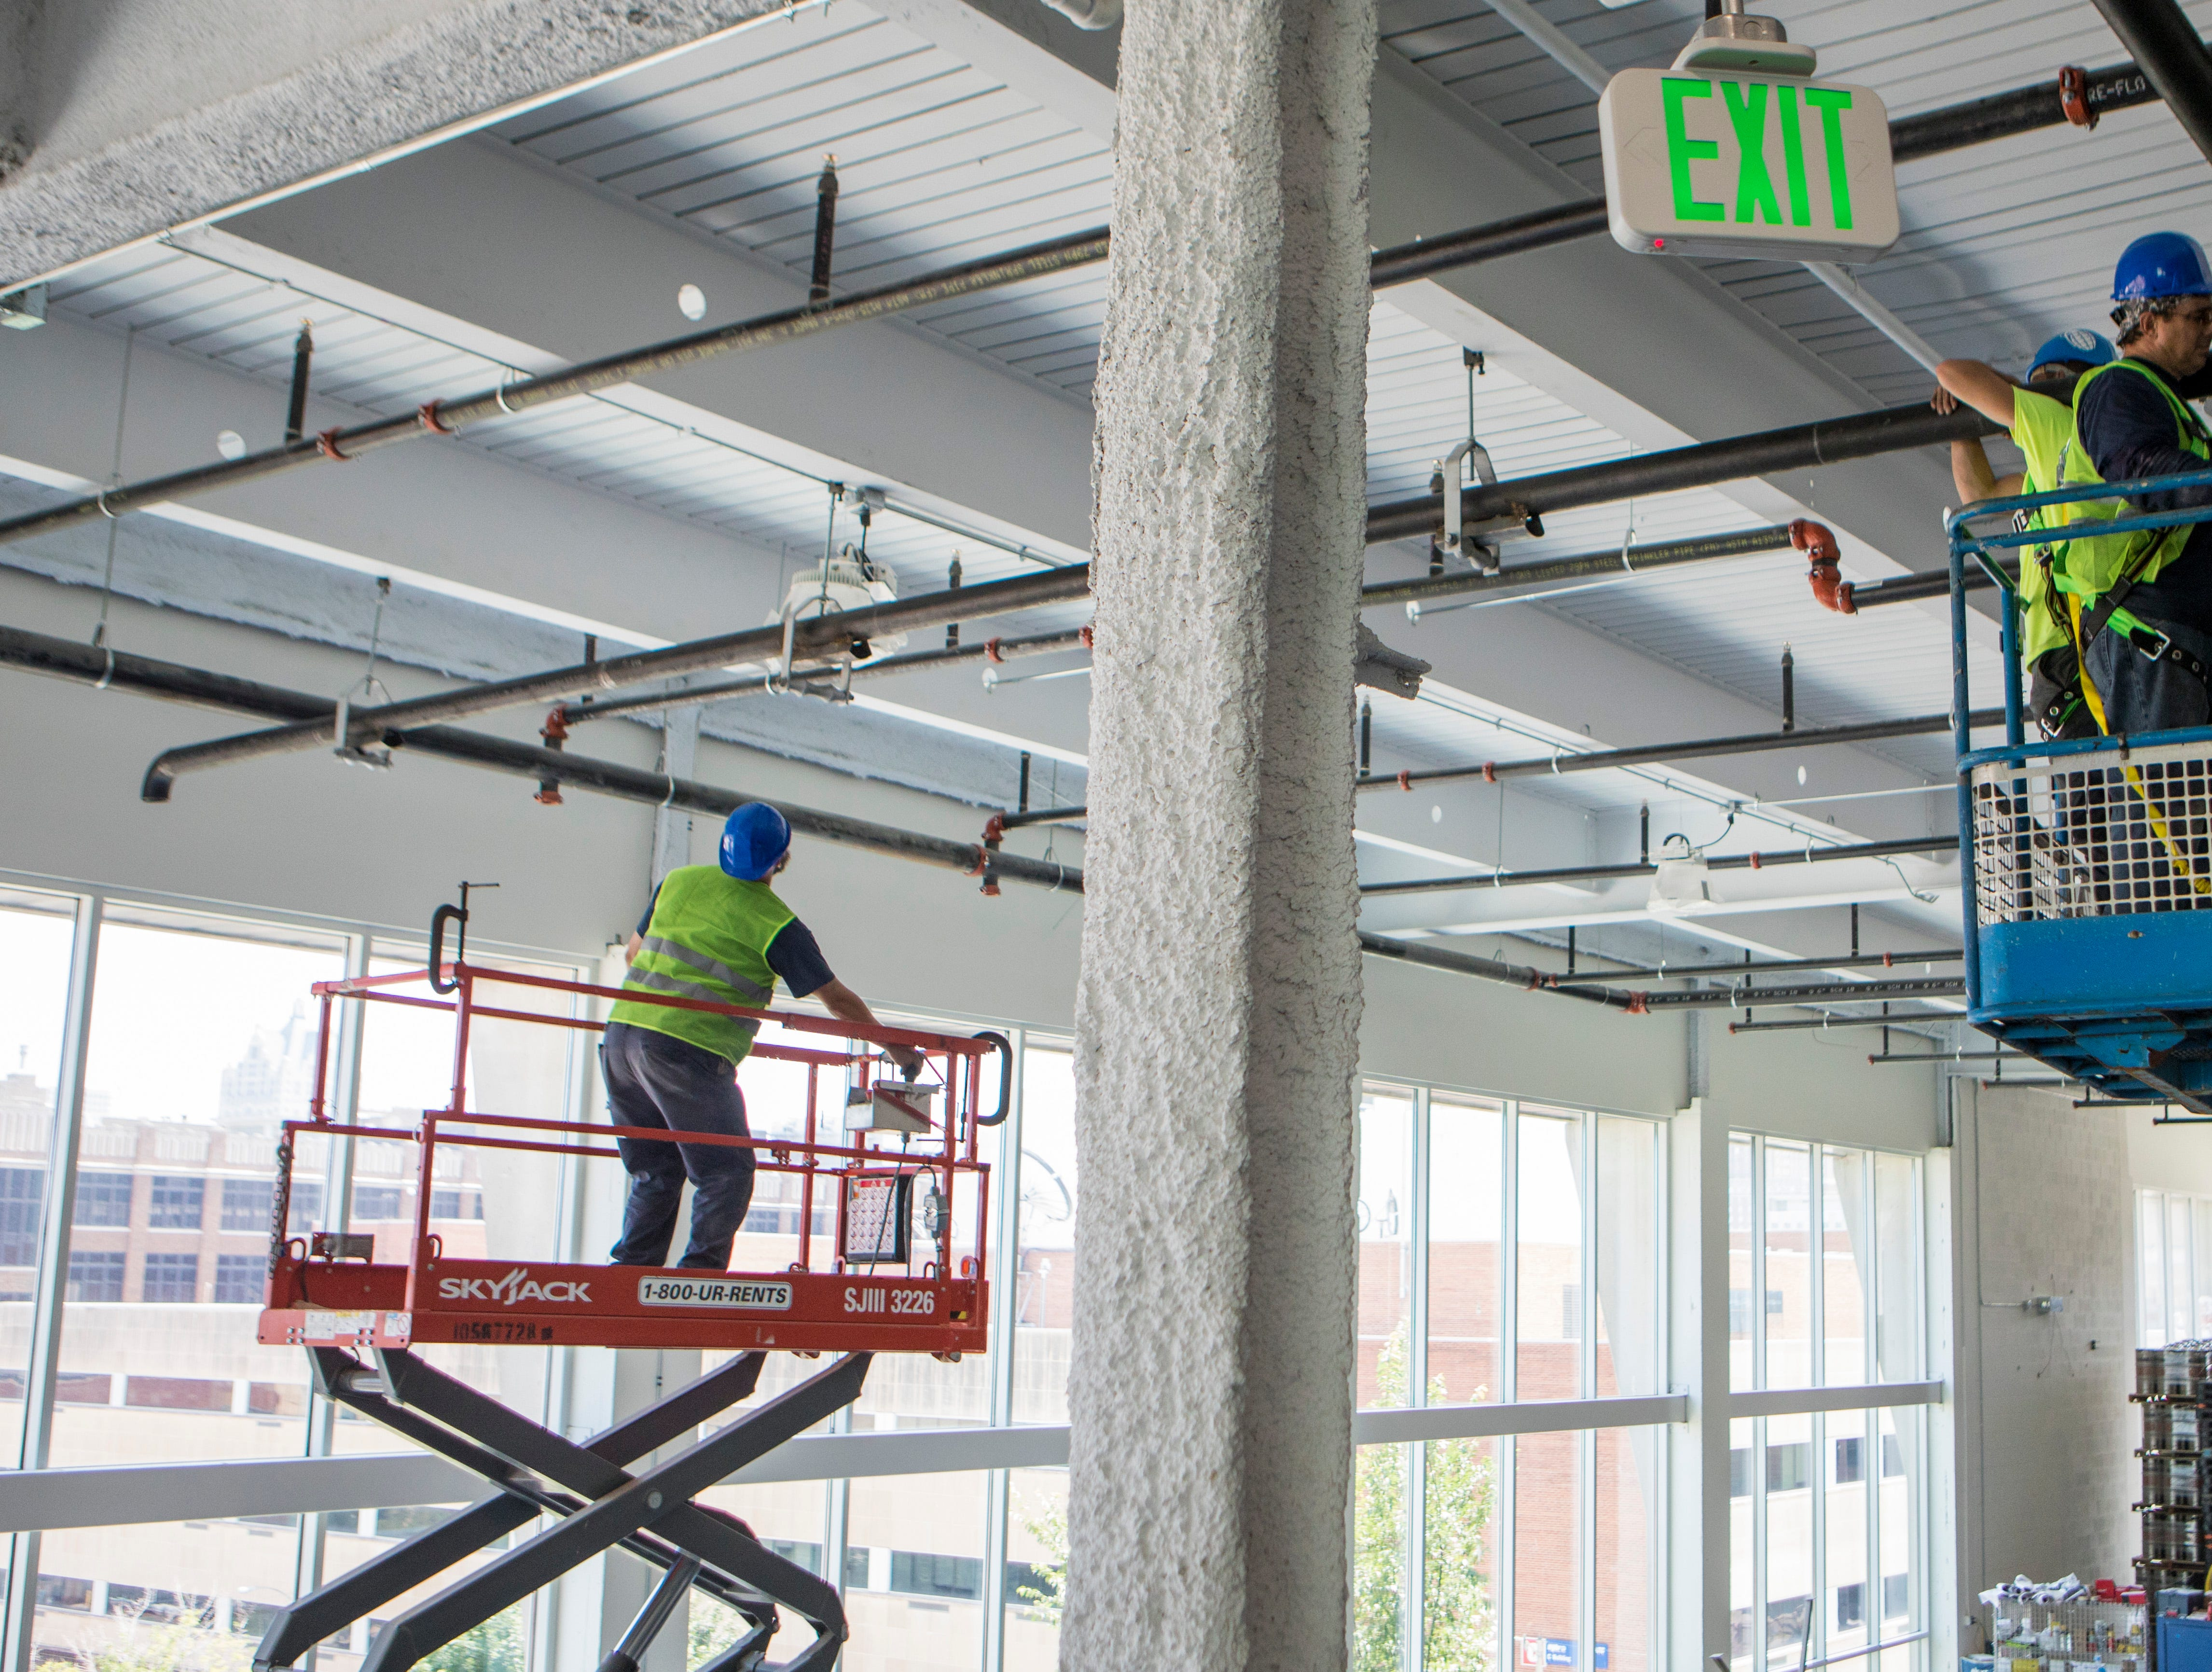 Construction workers keep up a steady pace to be ready for the MKE Brewing grand opening on Sept. 15 and 16. MKE Brewing will be part of a celebratory opening for The 42 starting Aug. 29.